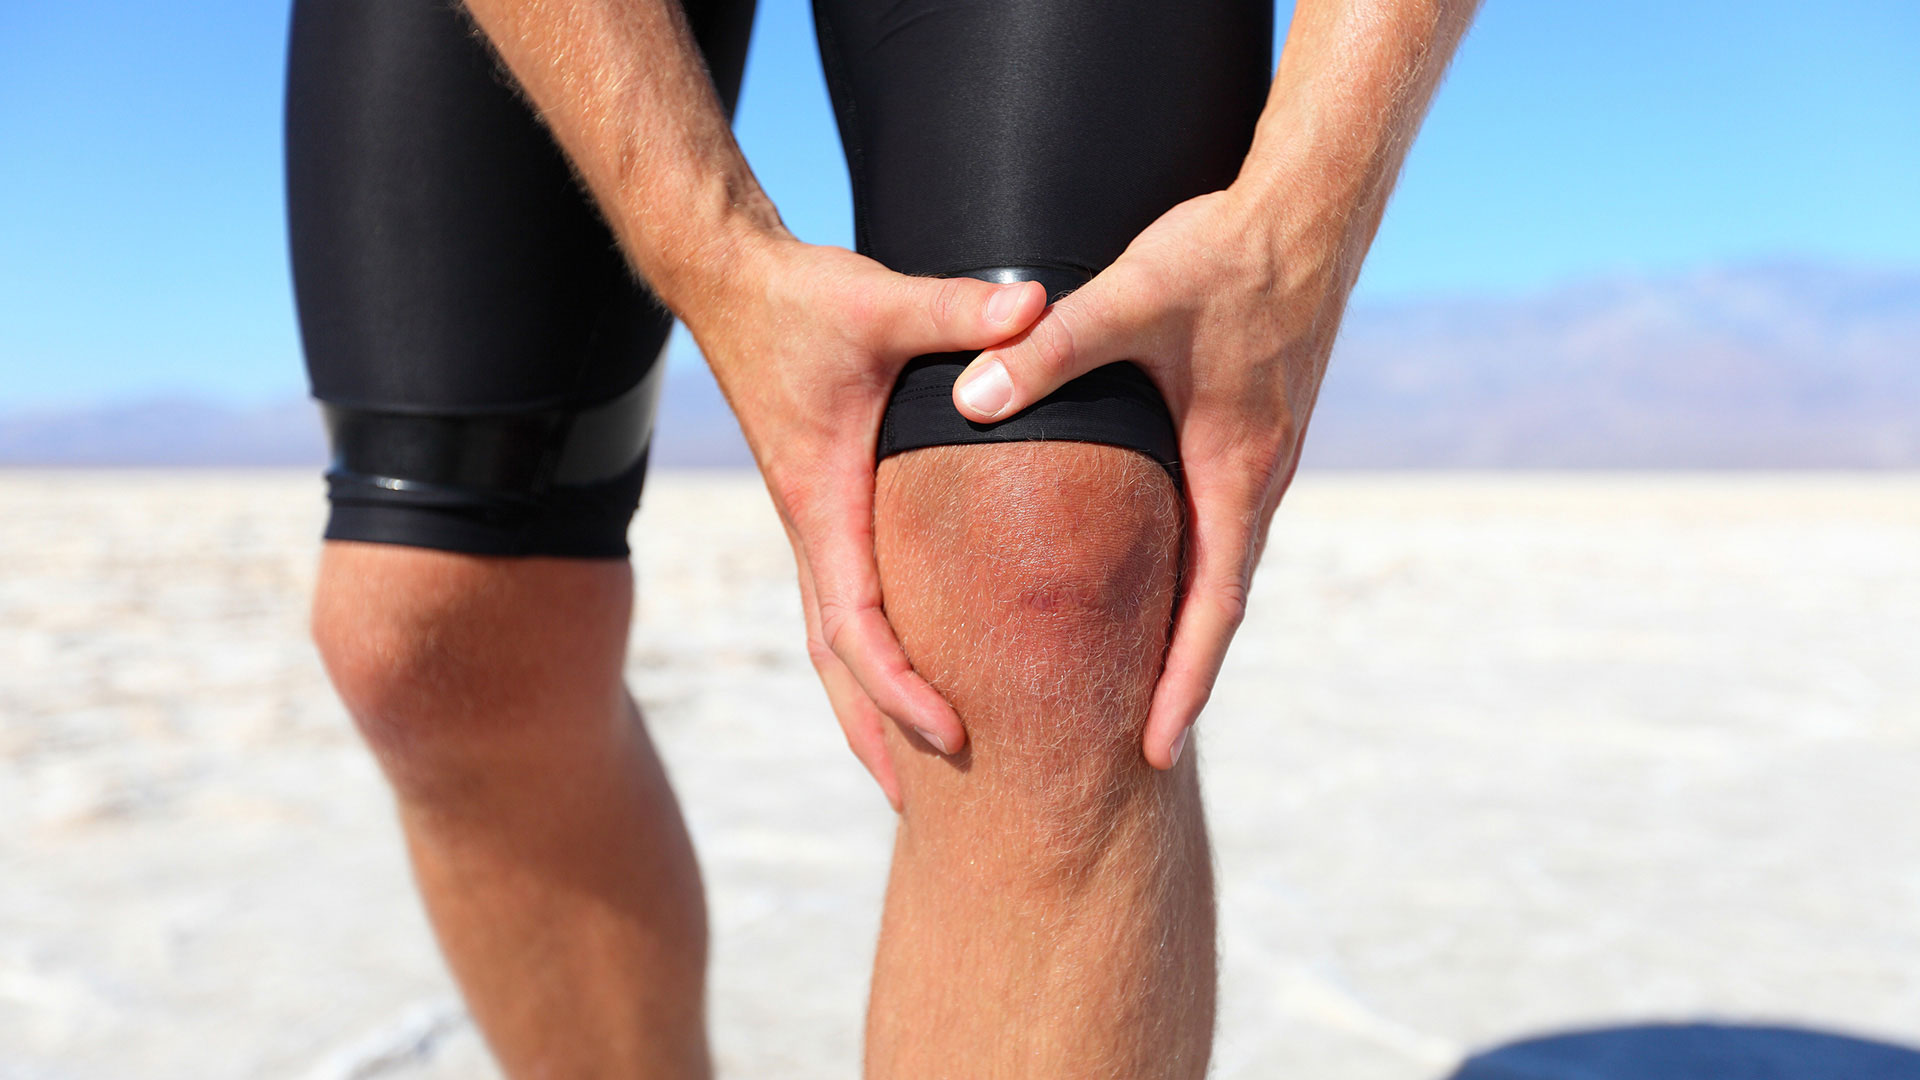 ACL Injury and Chiropractic